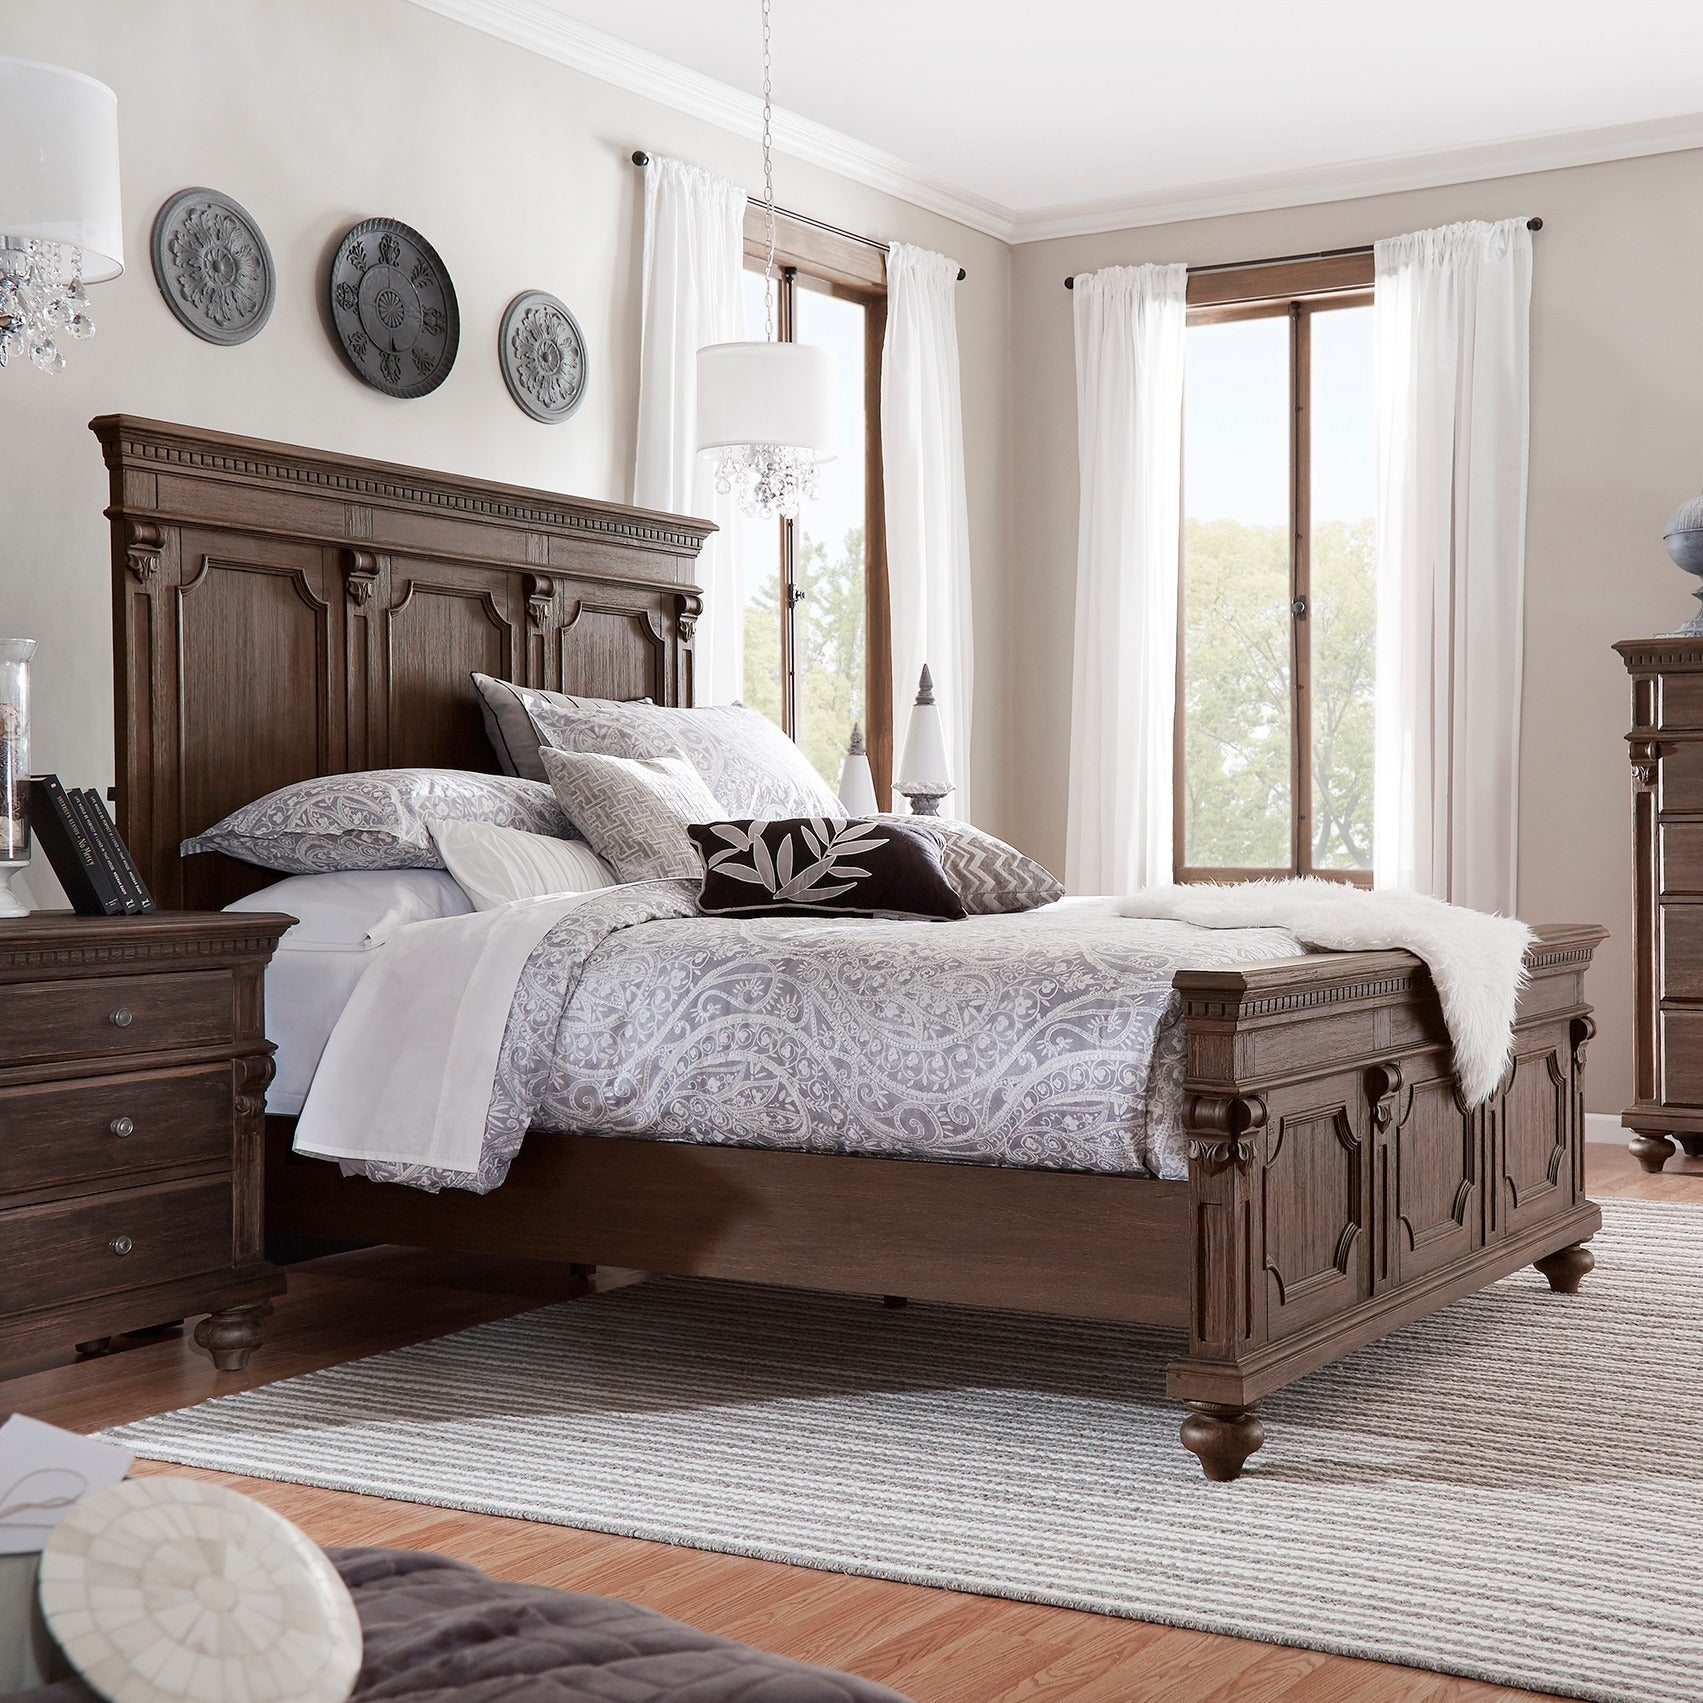 Cristoph Warm Brown Pedestal Style Bed (Queen Size)